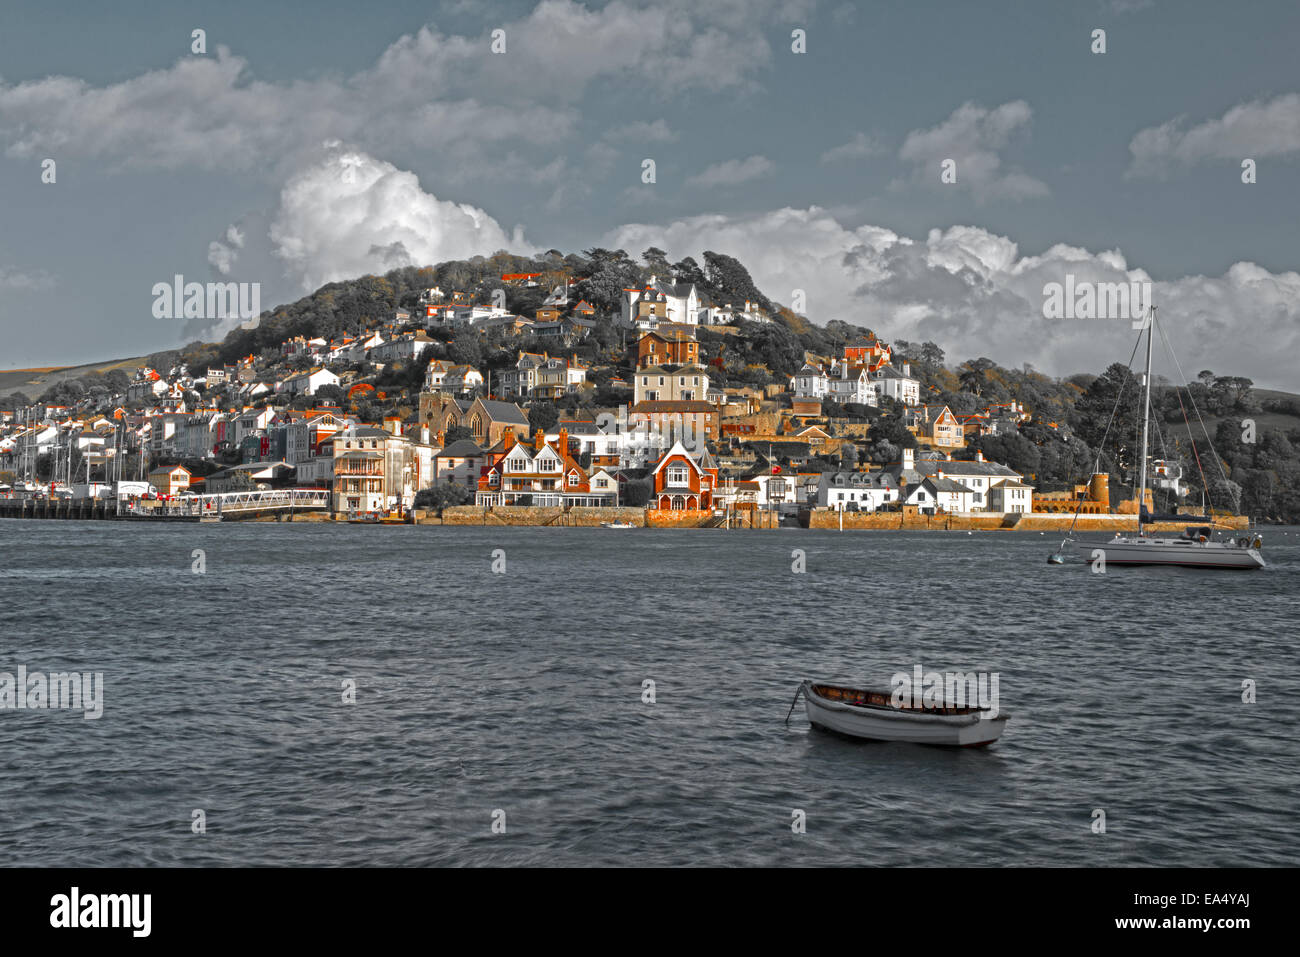 Kingswear and the River Dart,South Hams, Devon, England, Uk. - Stock Image